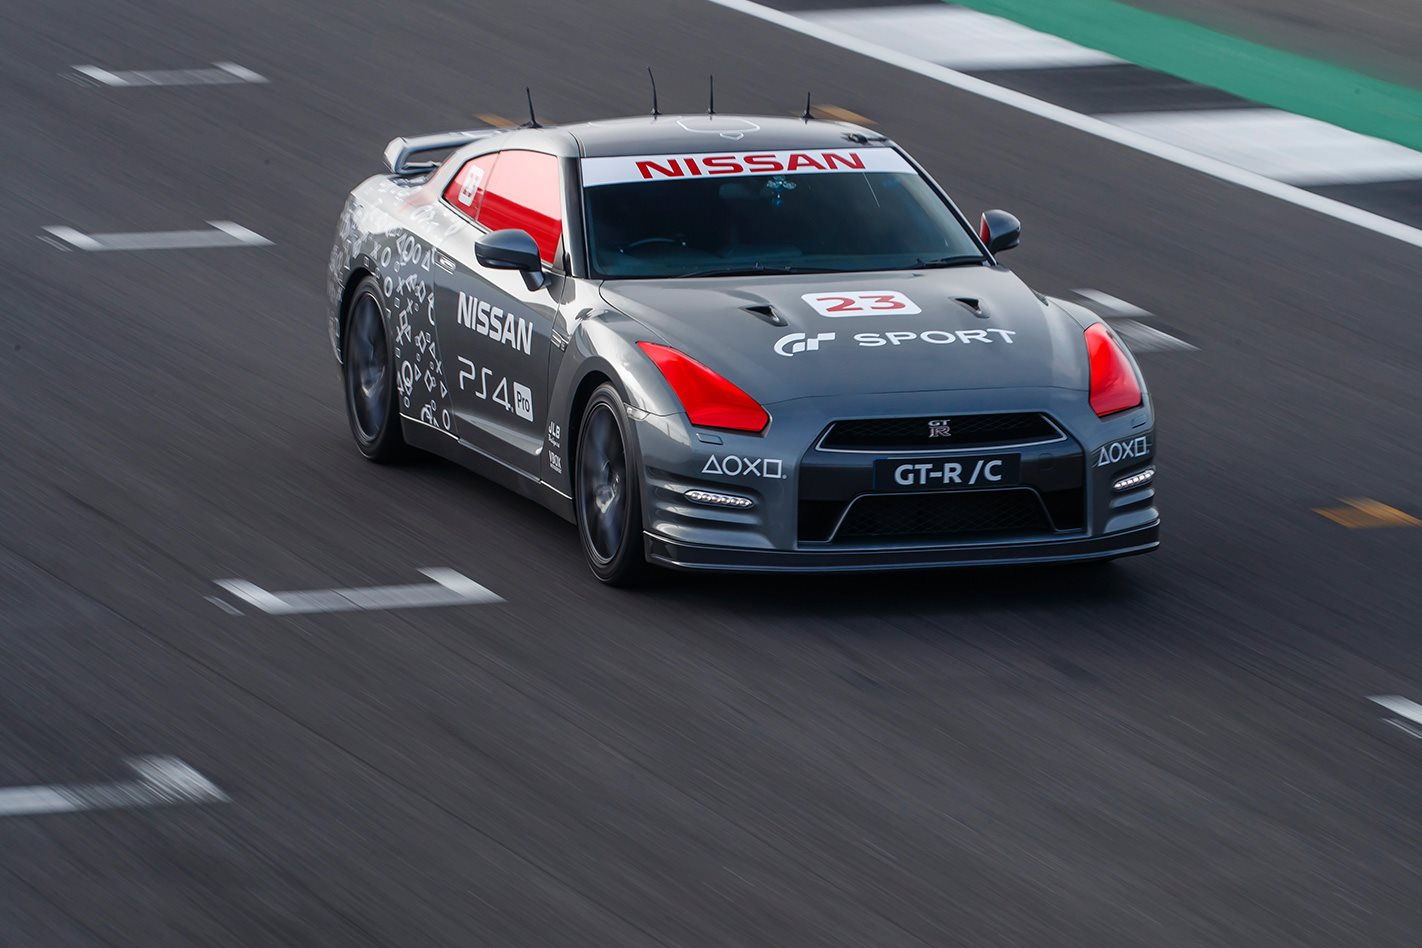 PS controller takes driverless Nissan GT-R to 131 miles per hour  around Silverstone